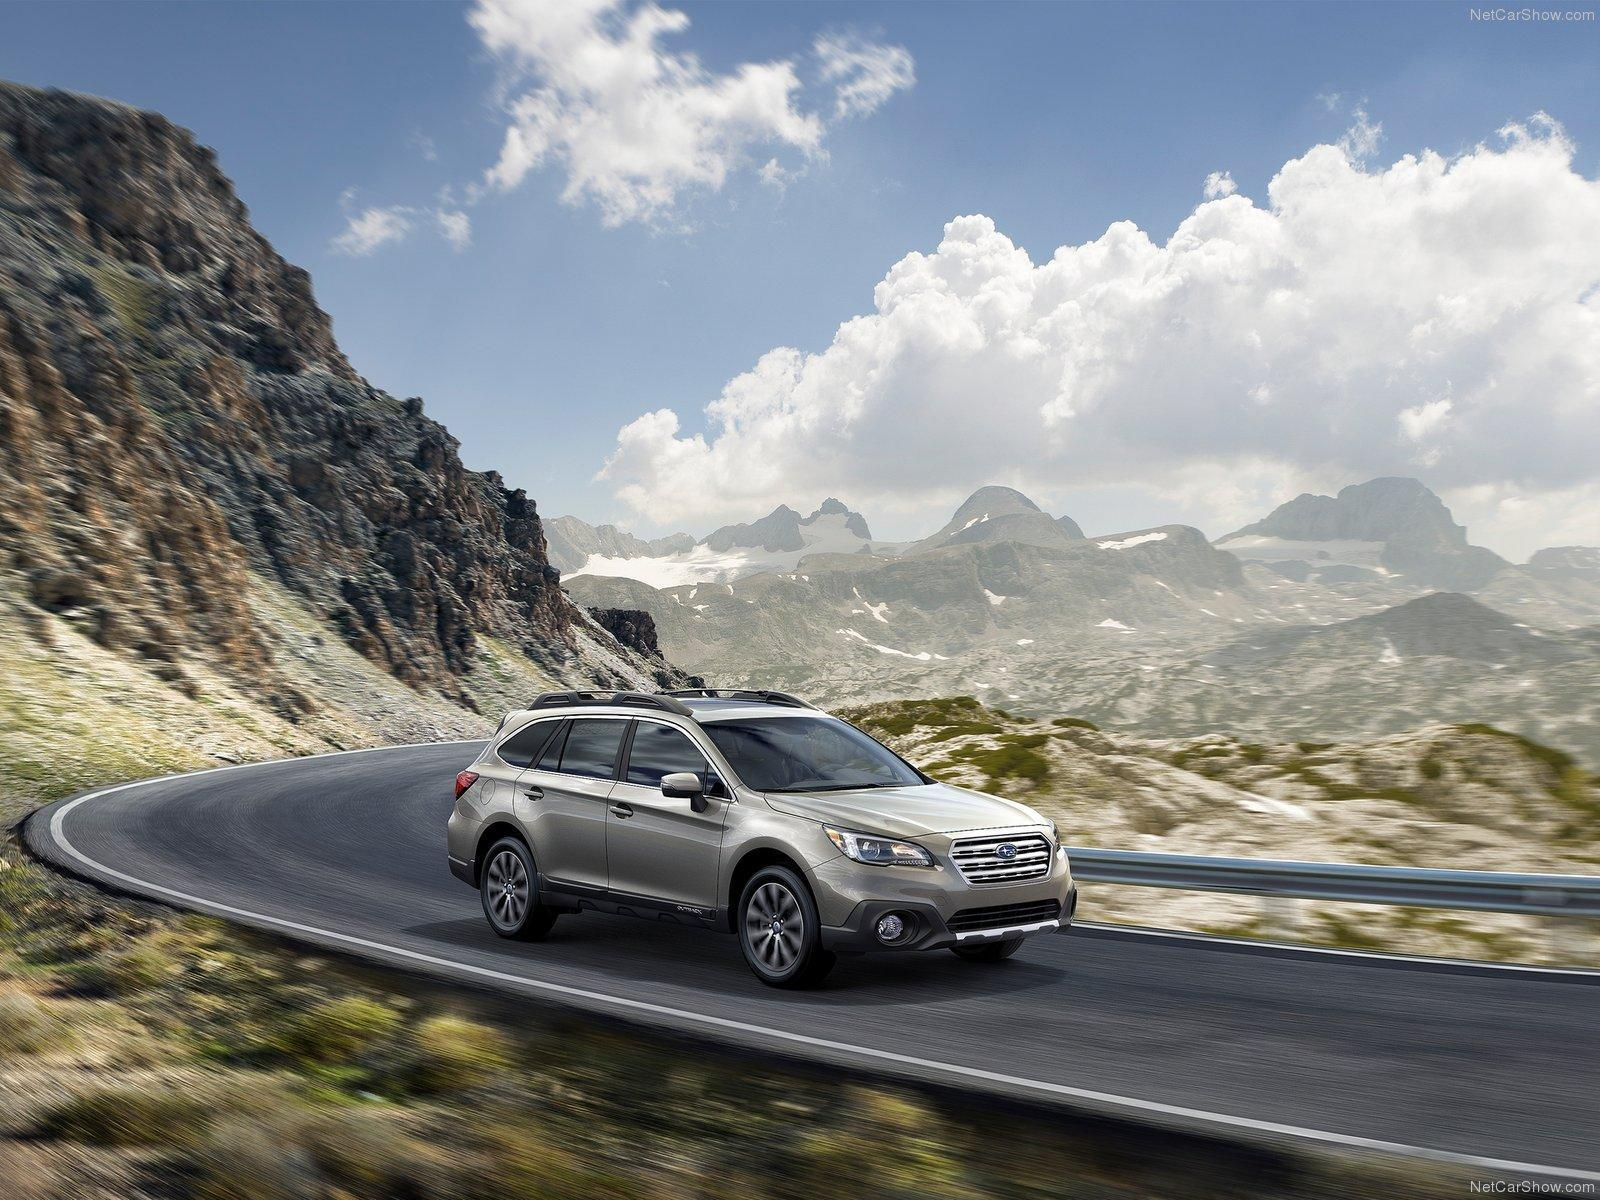 2015 Subaru Outback Windows 8 Wallpapers Download Free Windows 8